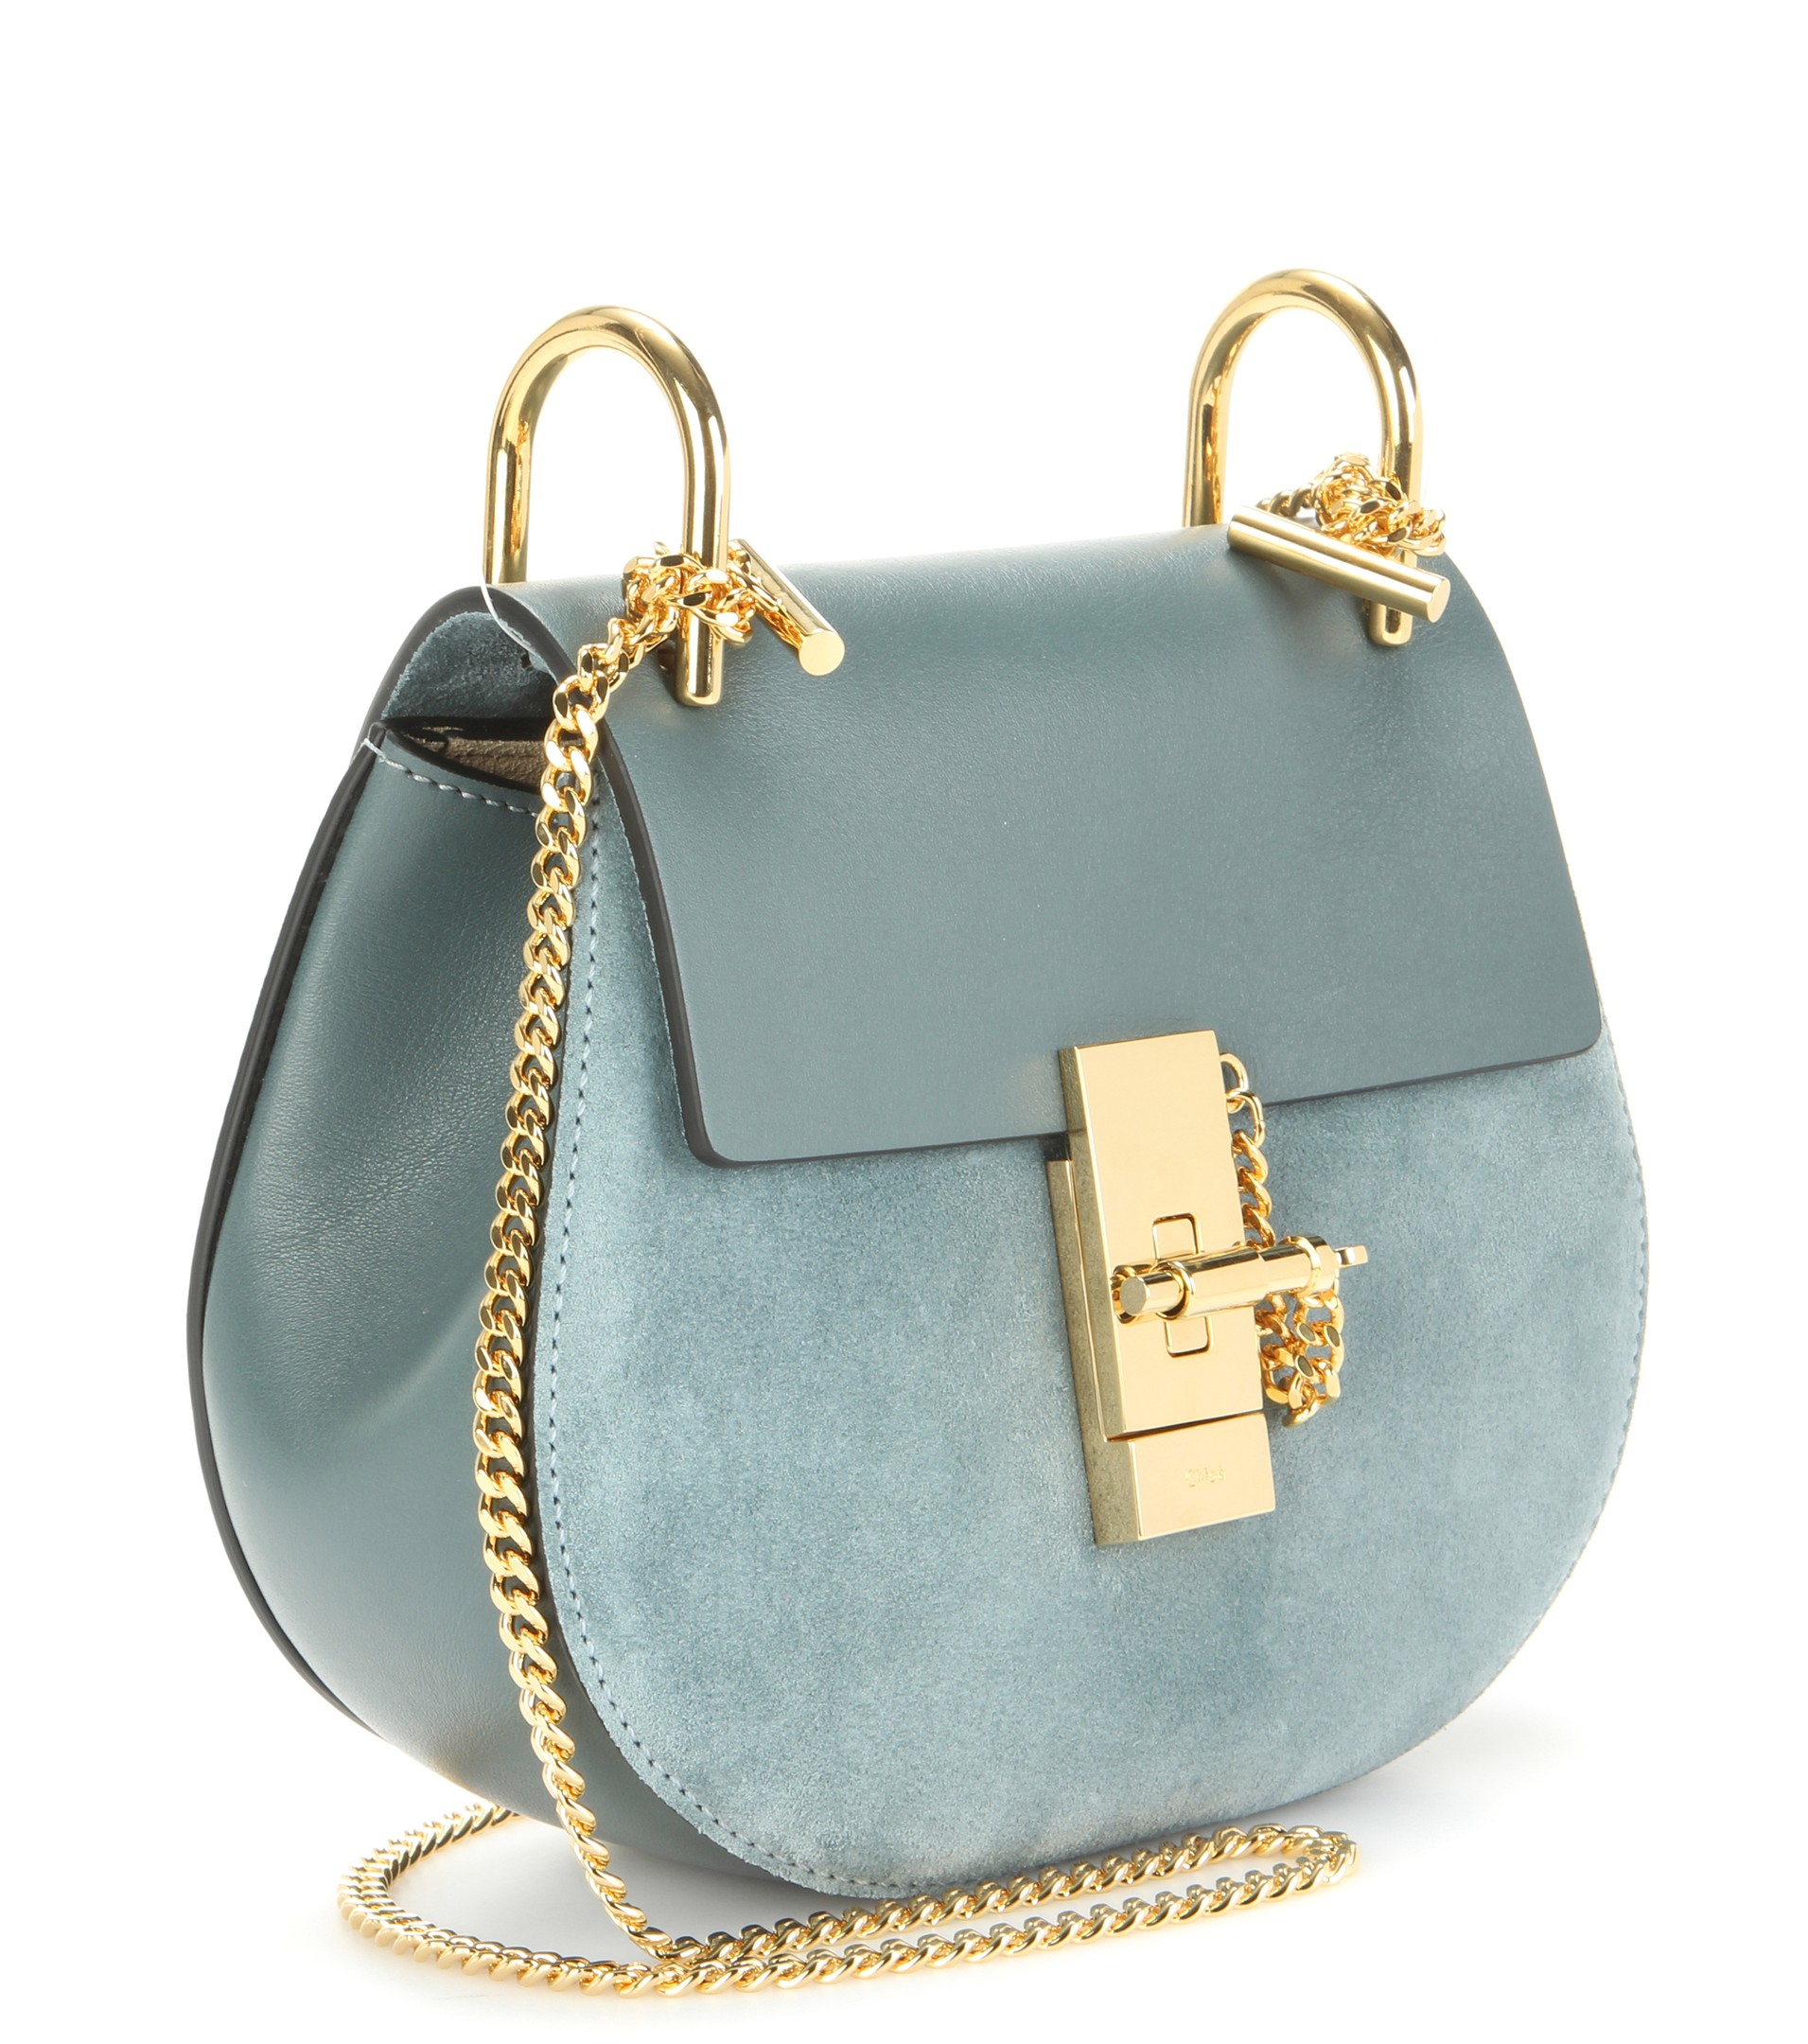 replica chloe handbags - Chlo�� Drew Leather And Suede Shoulder Bag in Blue | Lyst